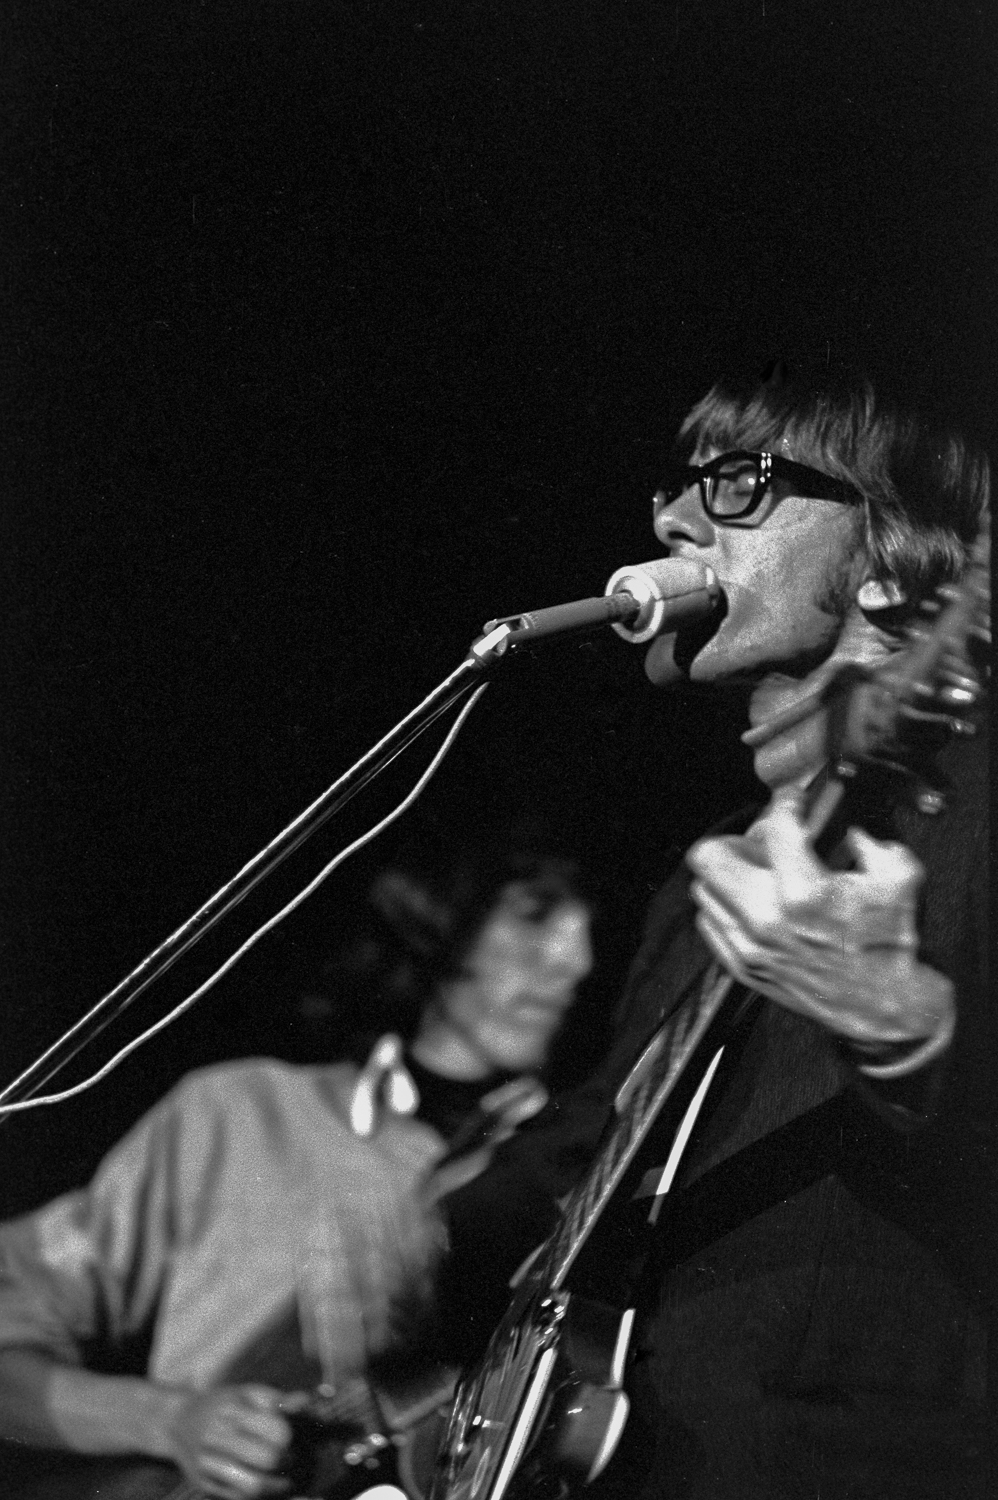 Paul Kantner (right) and Jorma Kaukonen (left) singing at a Stanford University concert, 1966